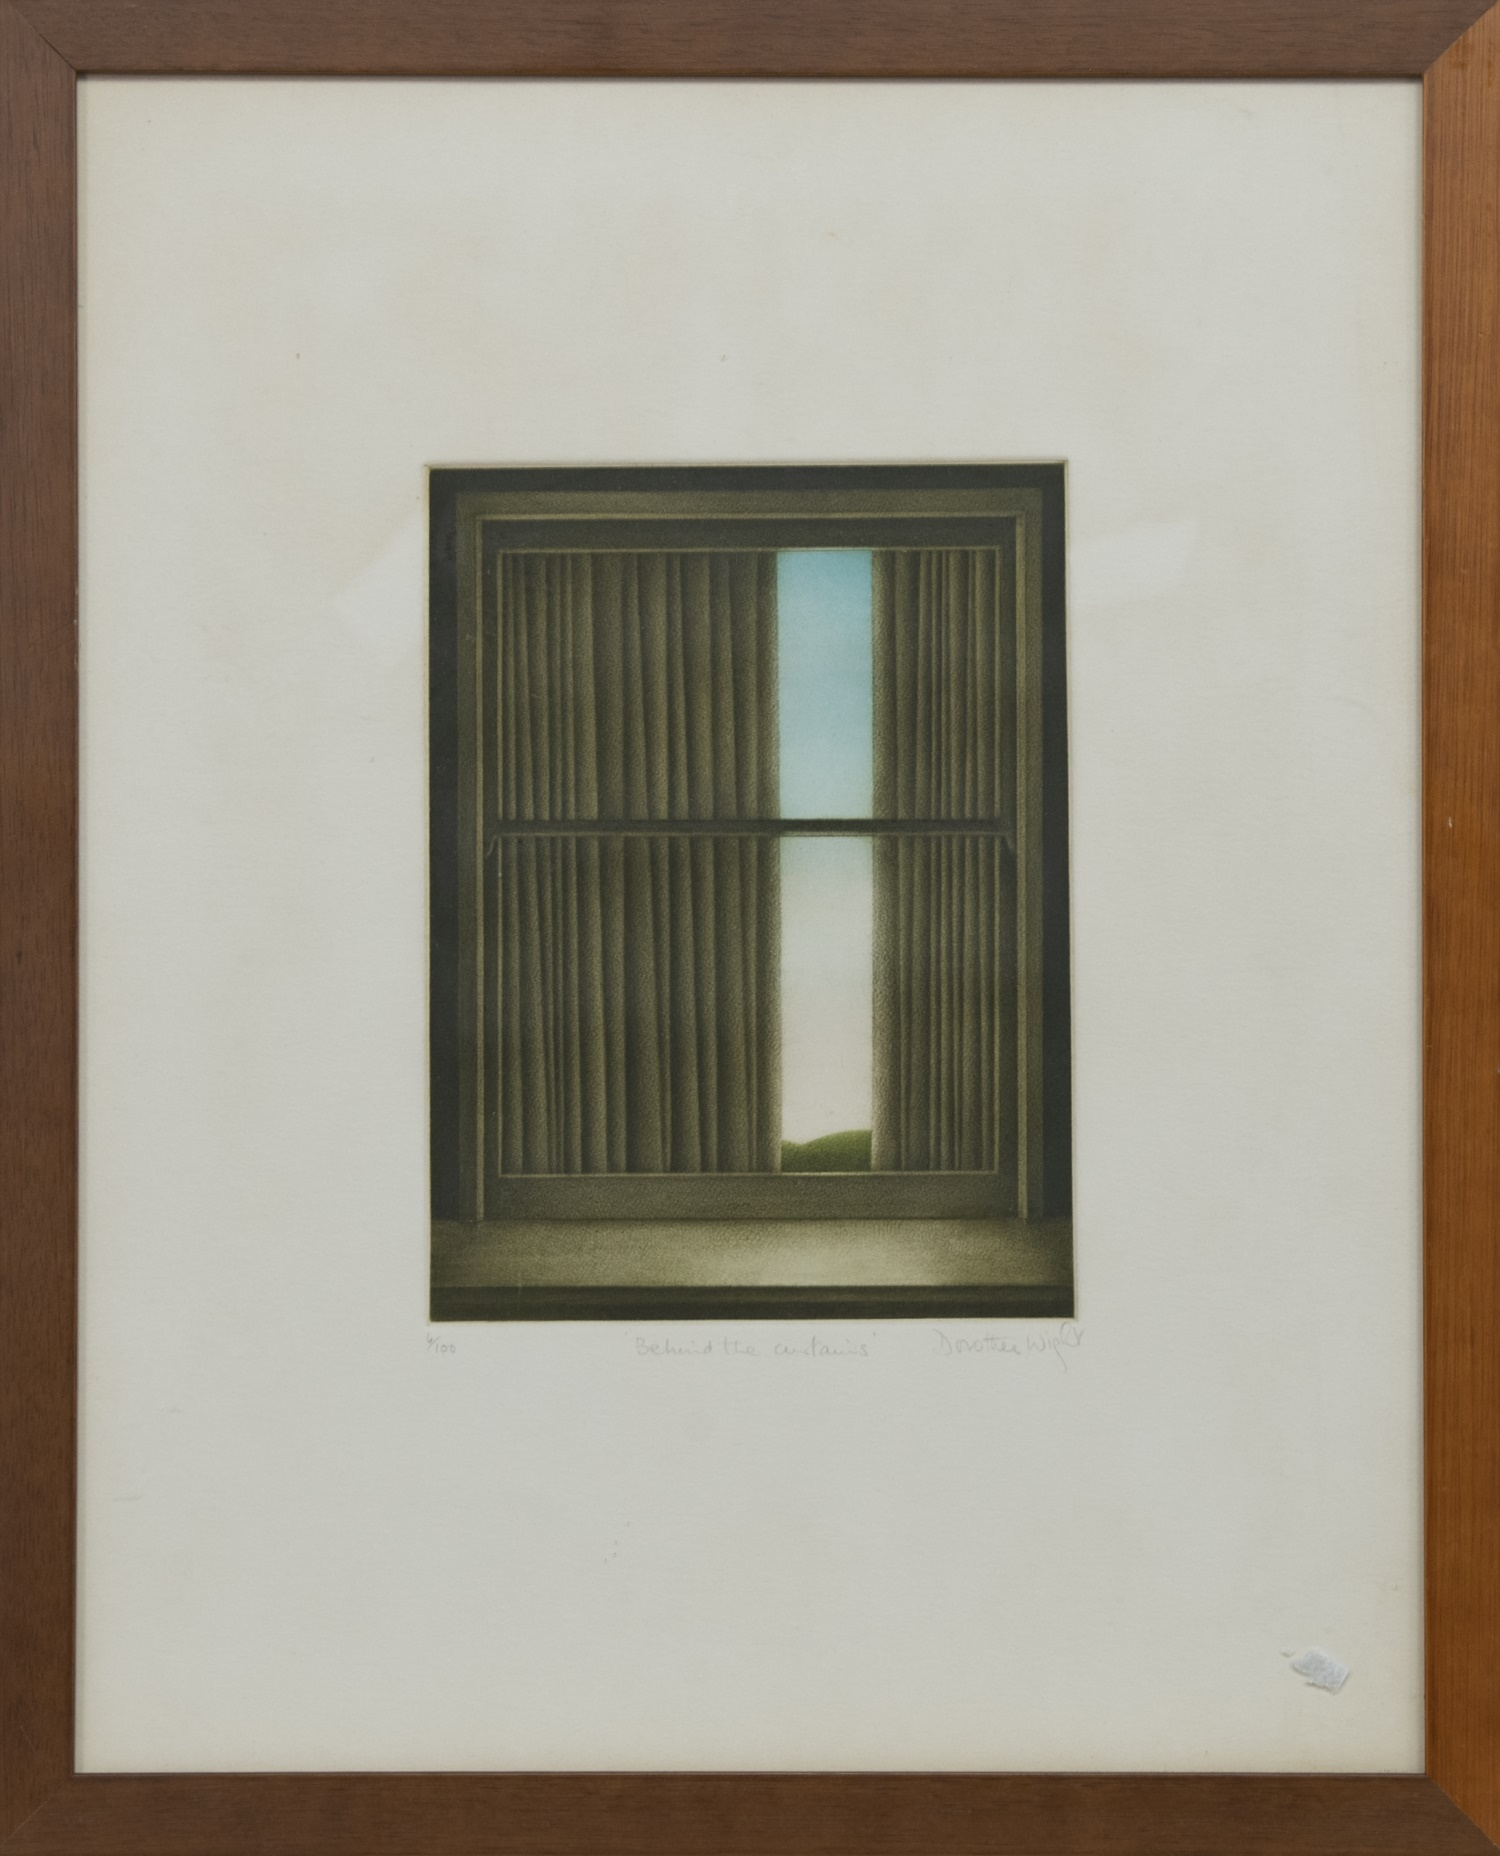 BEHIND THE CURTAINS, A MEZZOTINT BY DOROTHEA WIGHT